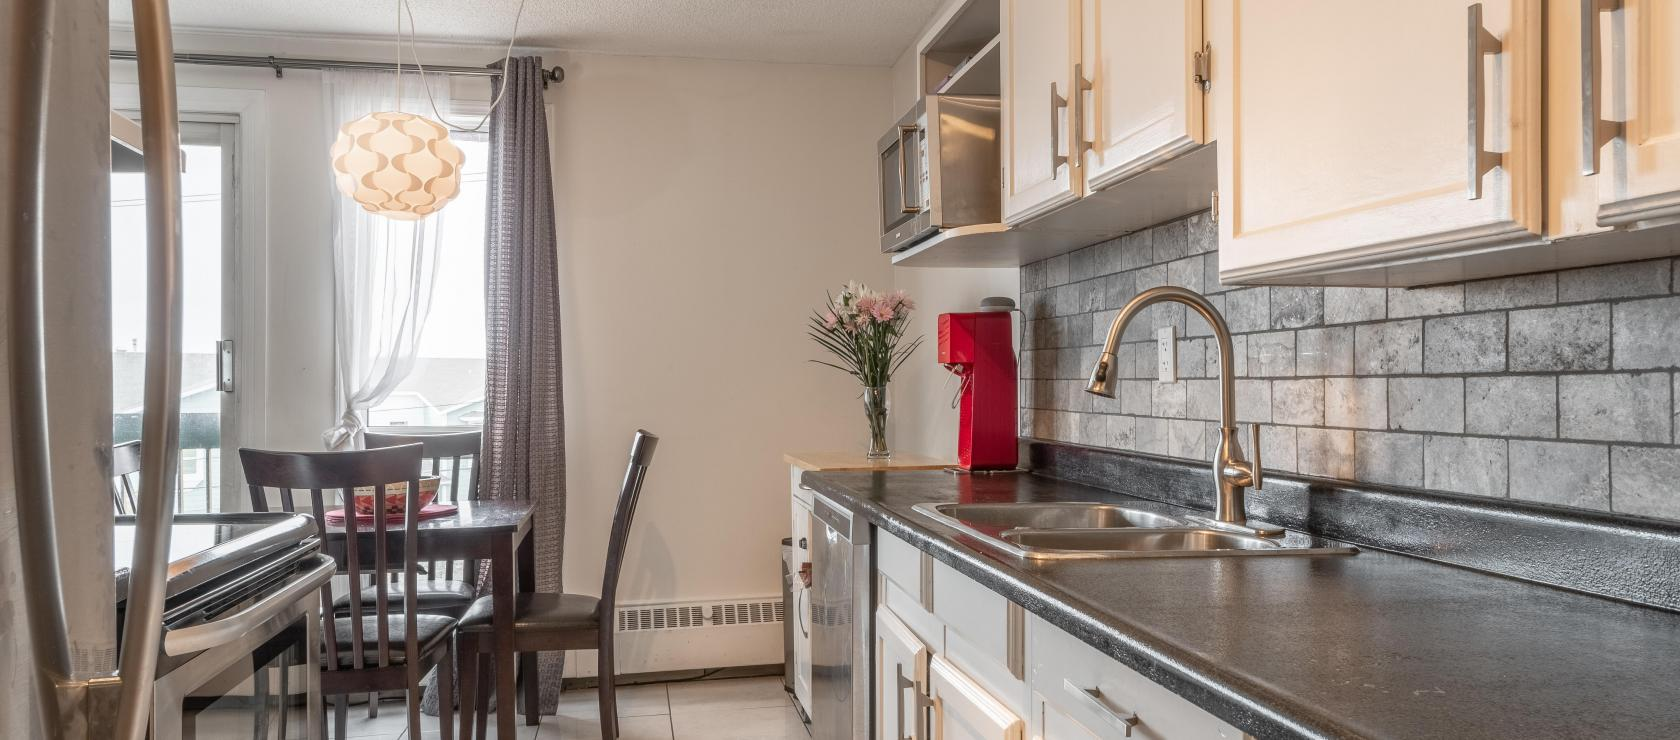 302A - 5109 Forrest Drive, Forrest Park, Yellowknife 2